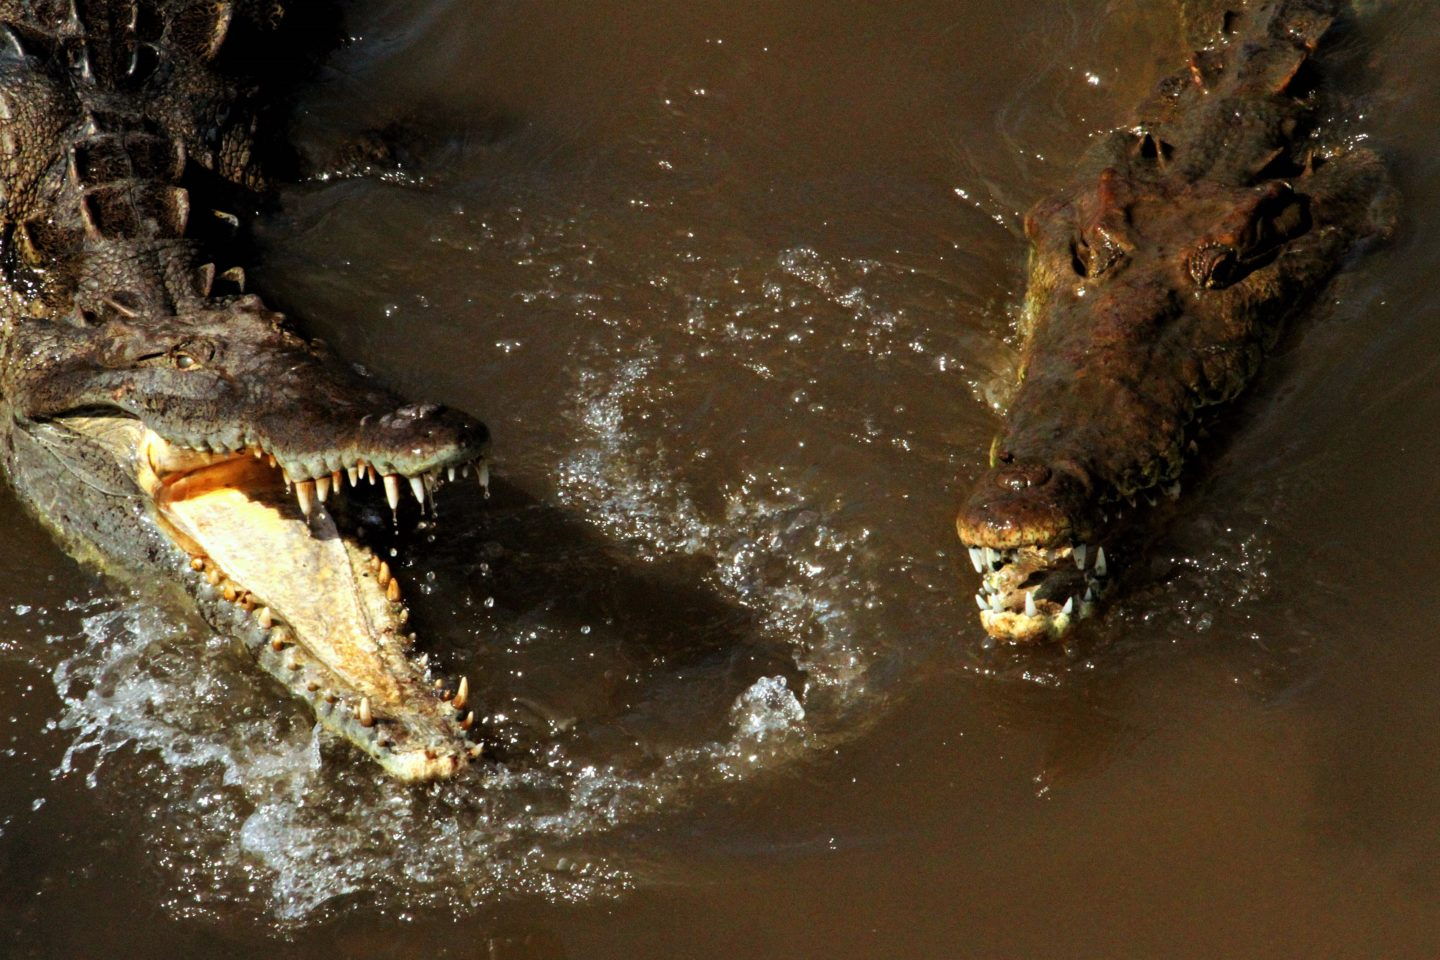 Crocodiles snapping, Costa Rica